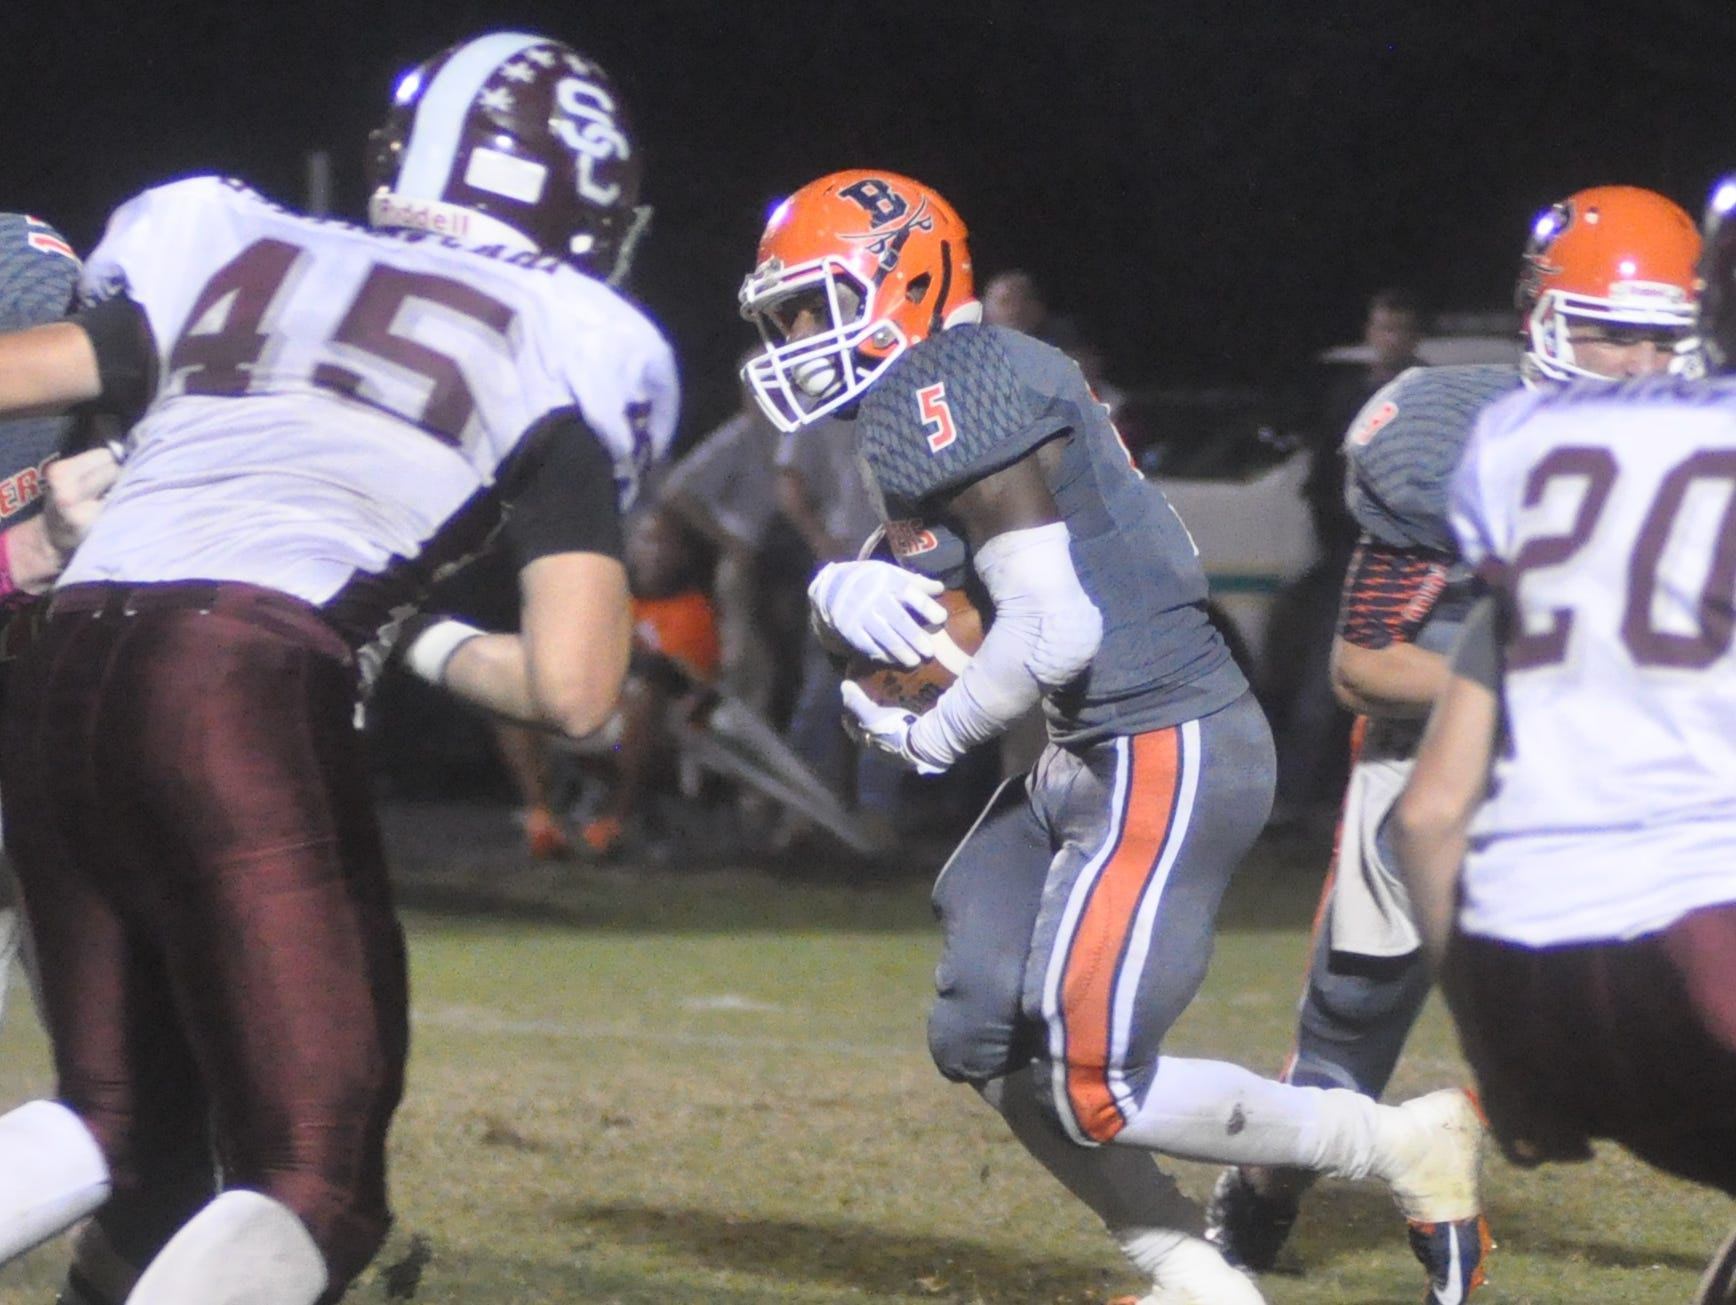 Beech senior tailback Rodrick Napper rushed for 176 yards and two touchdowns in Friday's 41-14 victory over Station Camp.